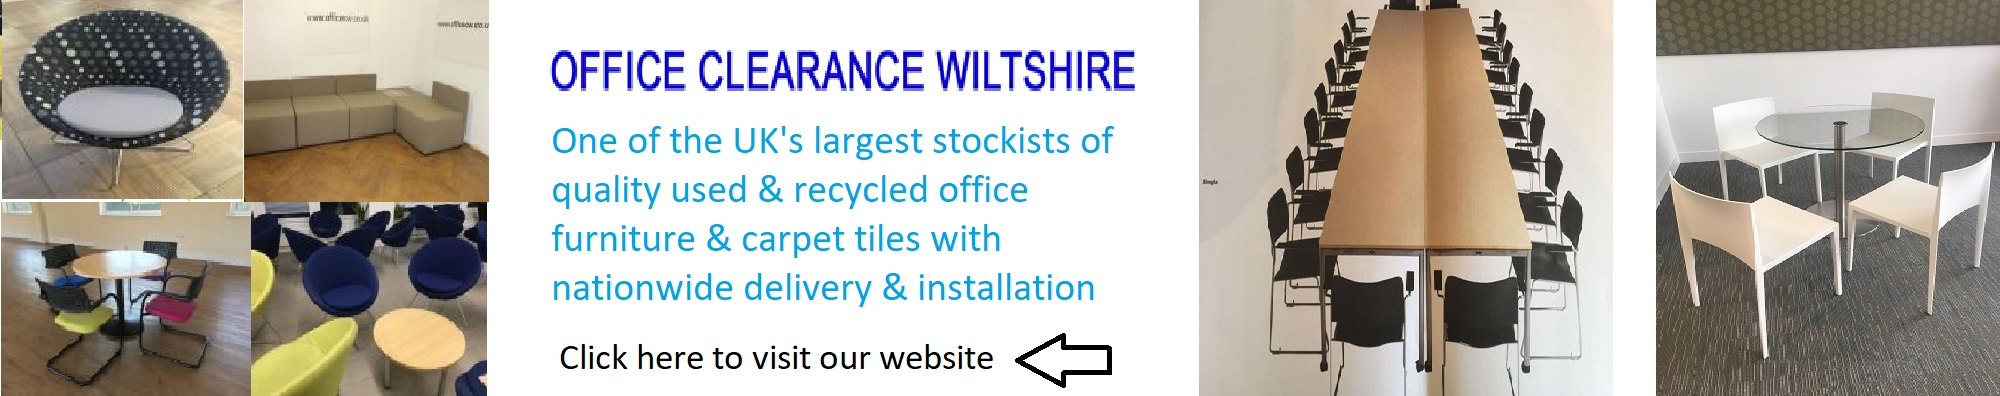 Office Clearance Wiltshire Logo